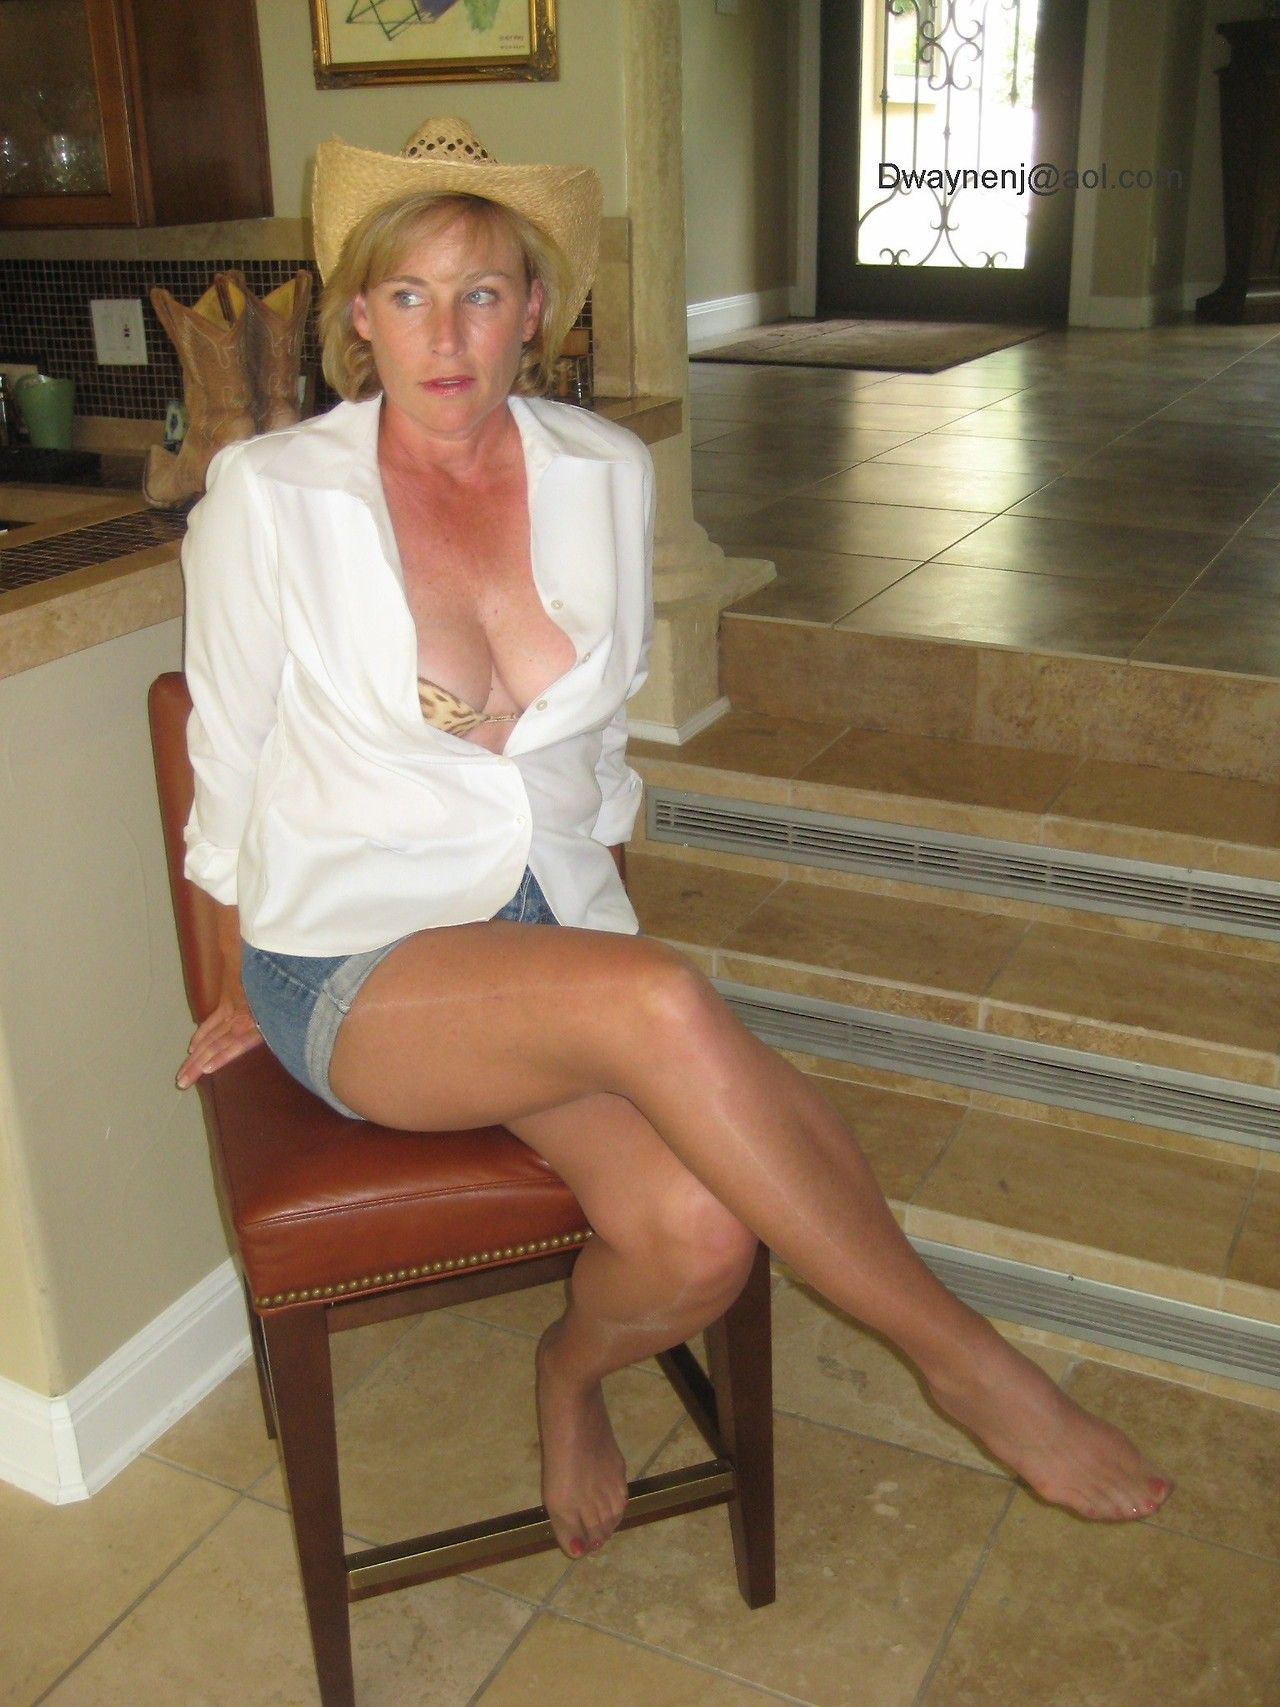 F/m i spank my son-in-law